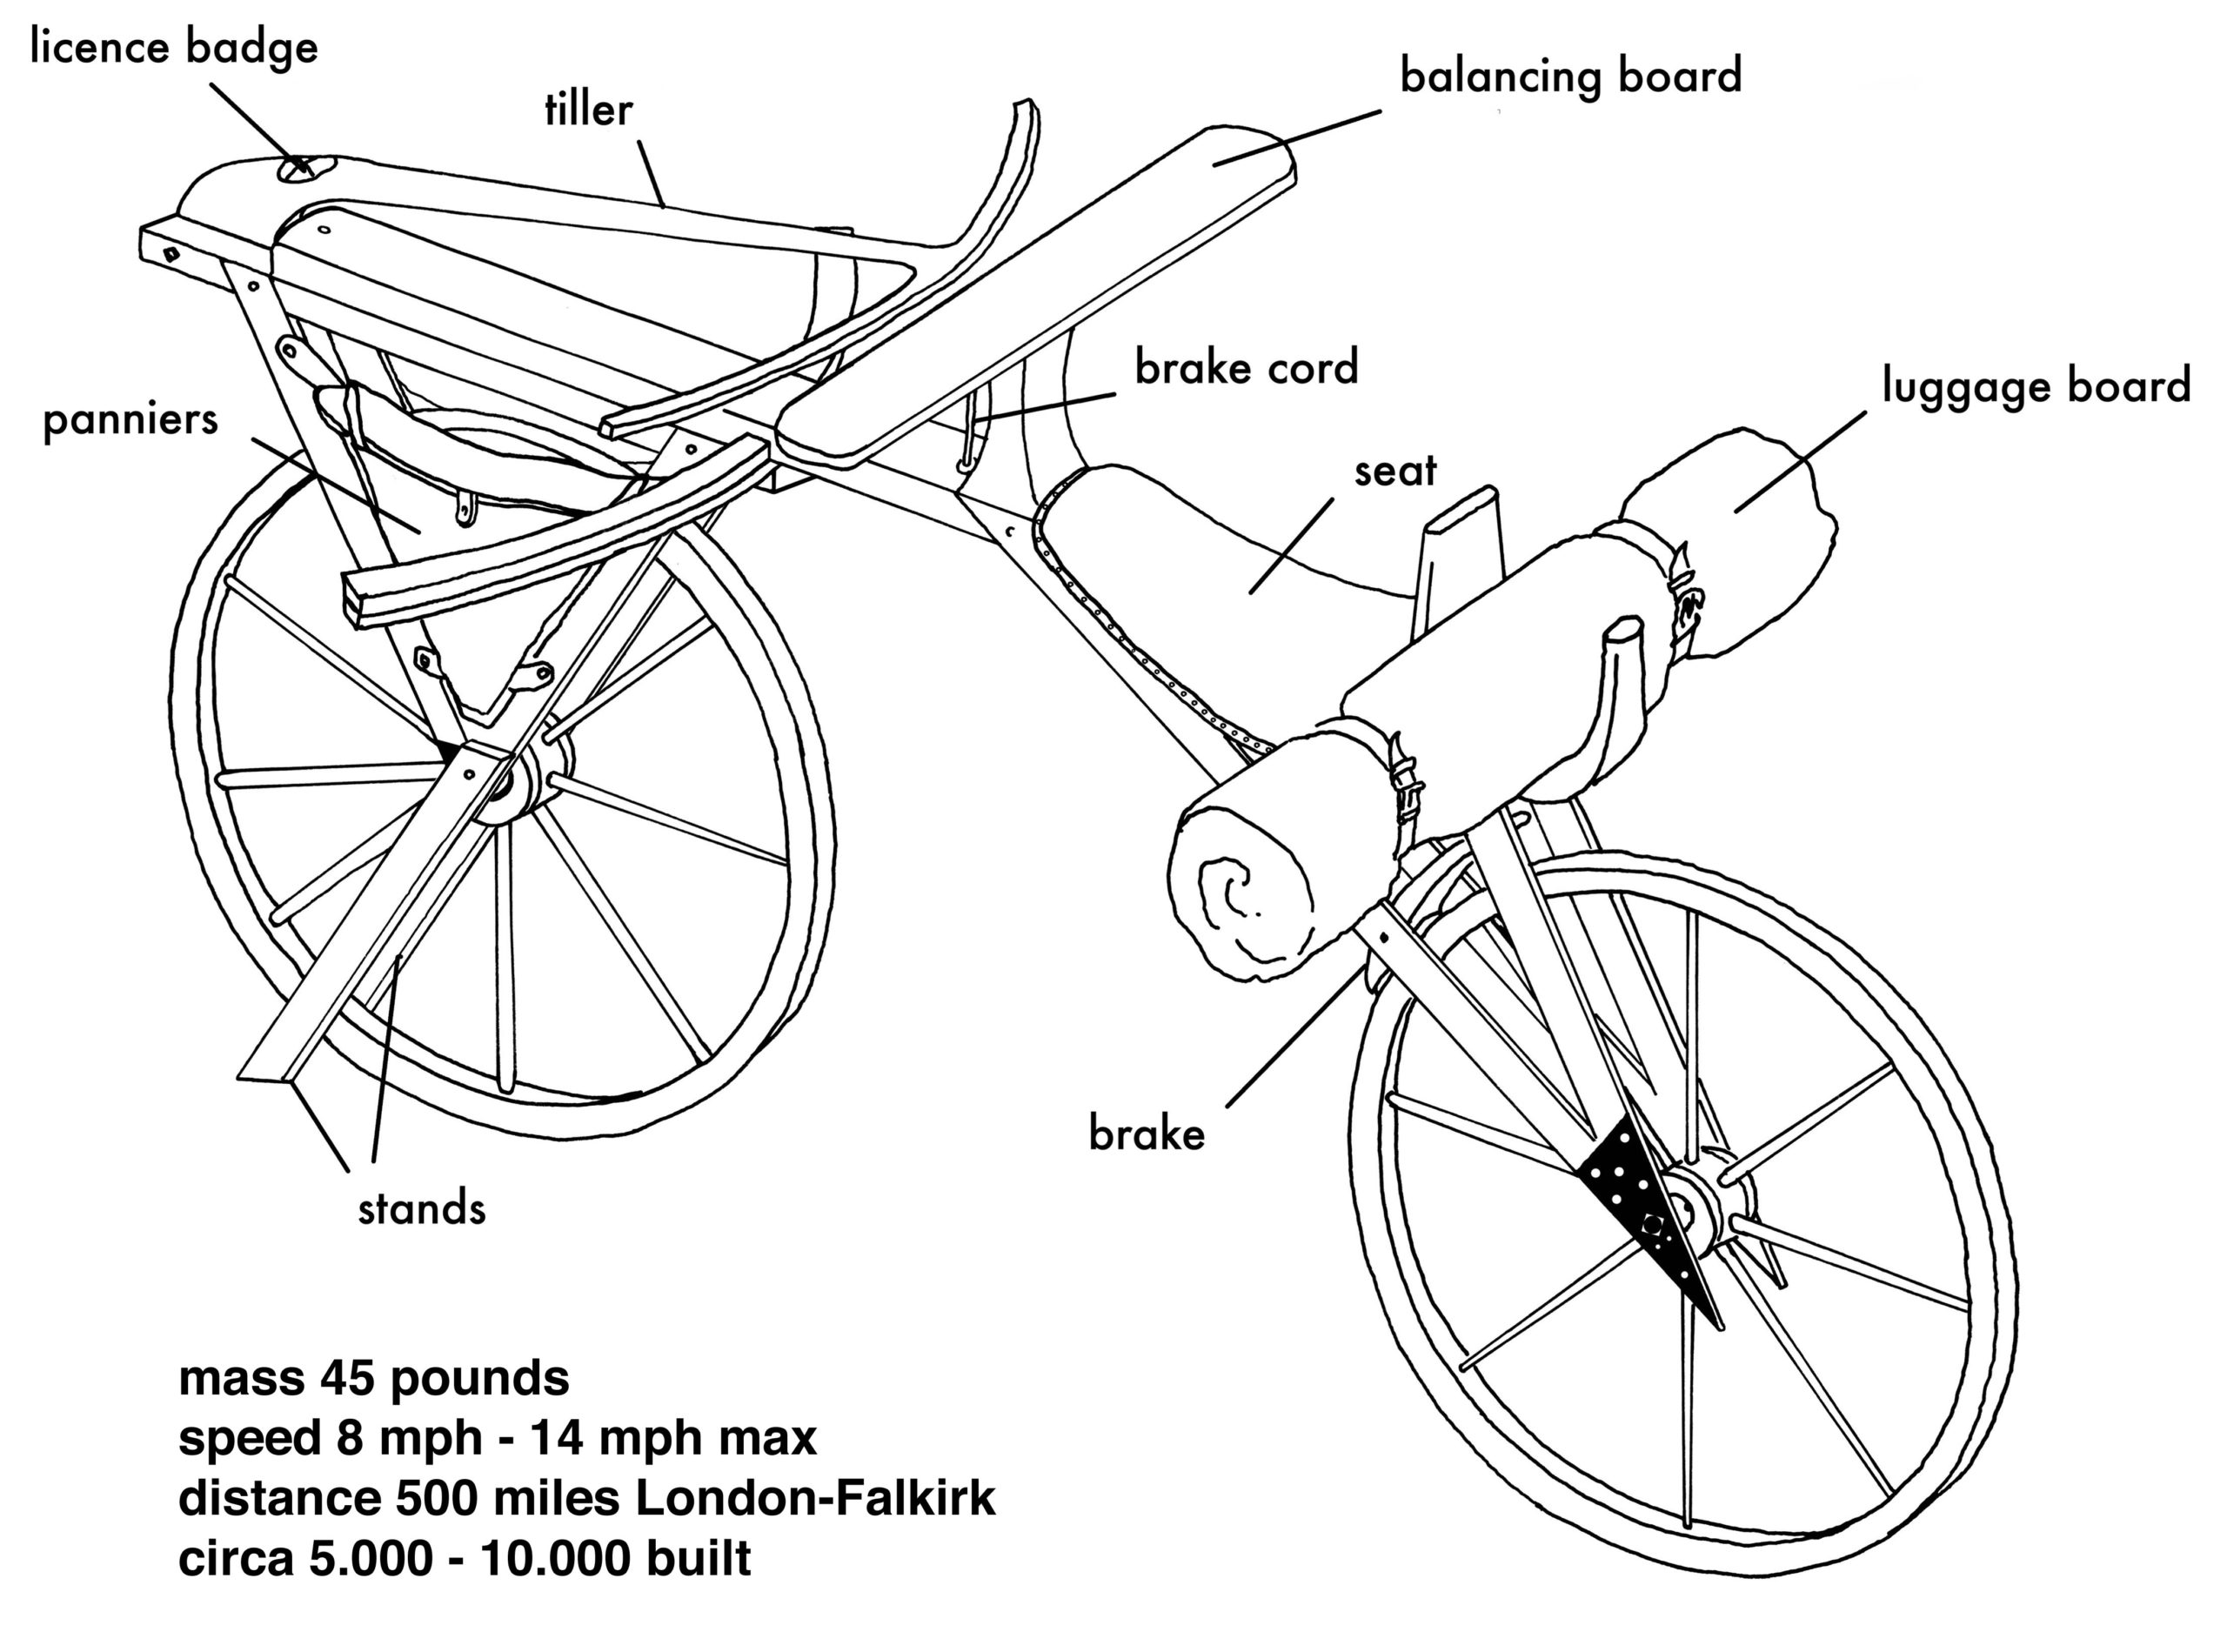 Schematic of Drais bike courtesy of Hans-Erhard Lessing.